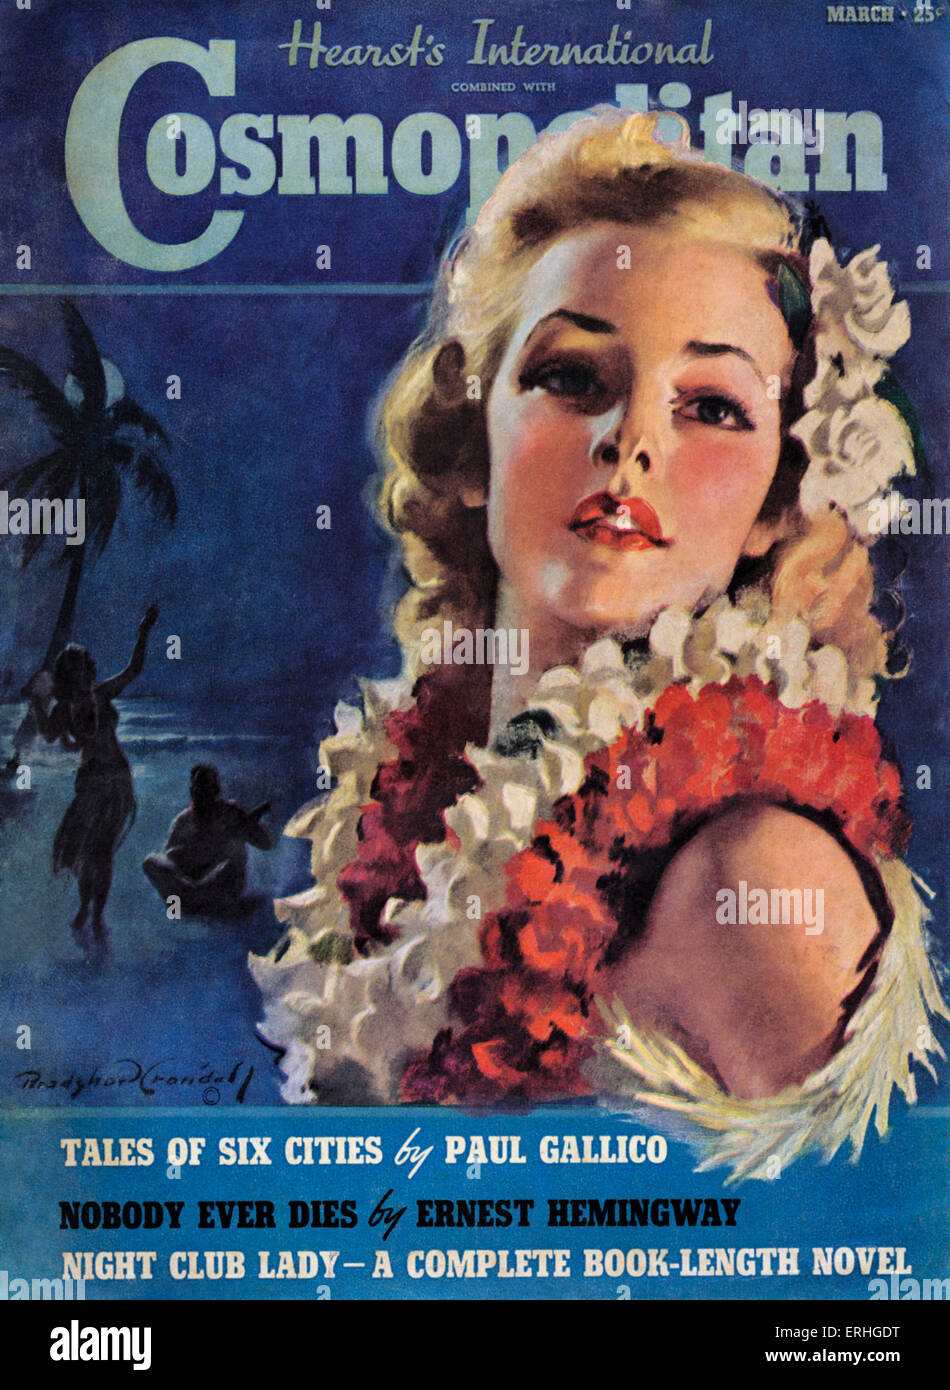 Cosmopolitan Magazine cover. March 1939 issue. Girl with blonde hair and Hawaiian flower lei - illustration for - Stock Image